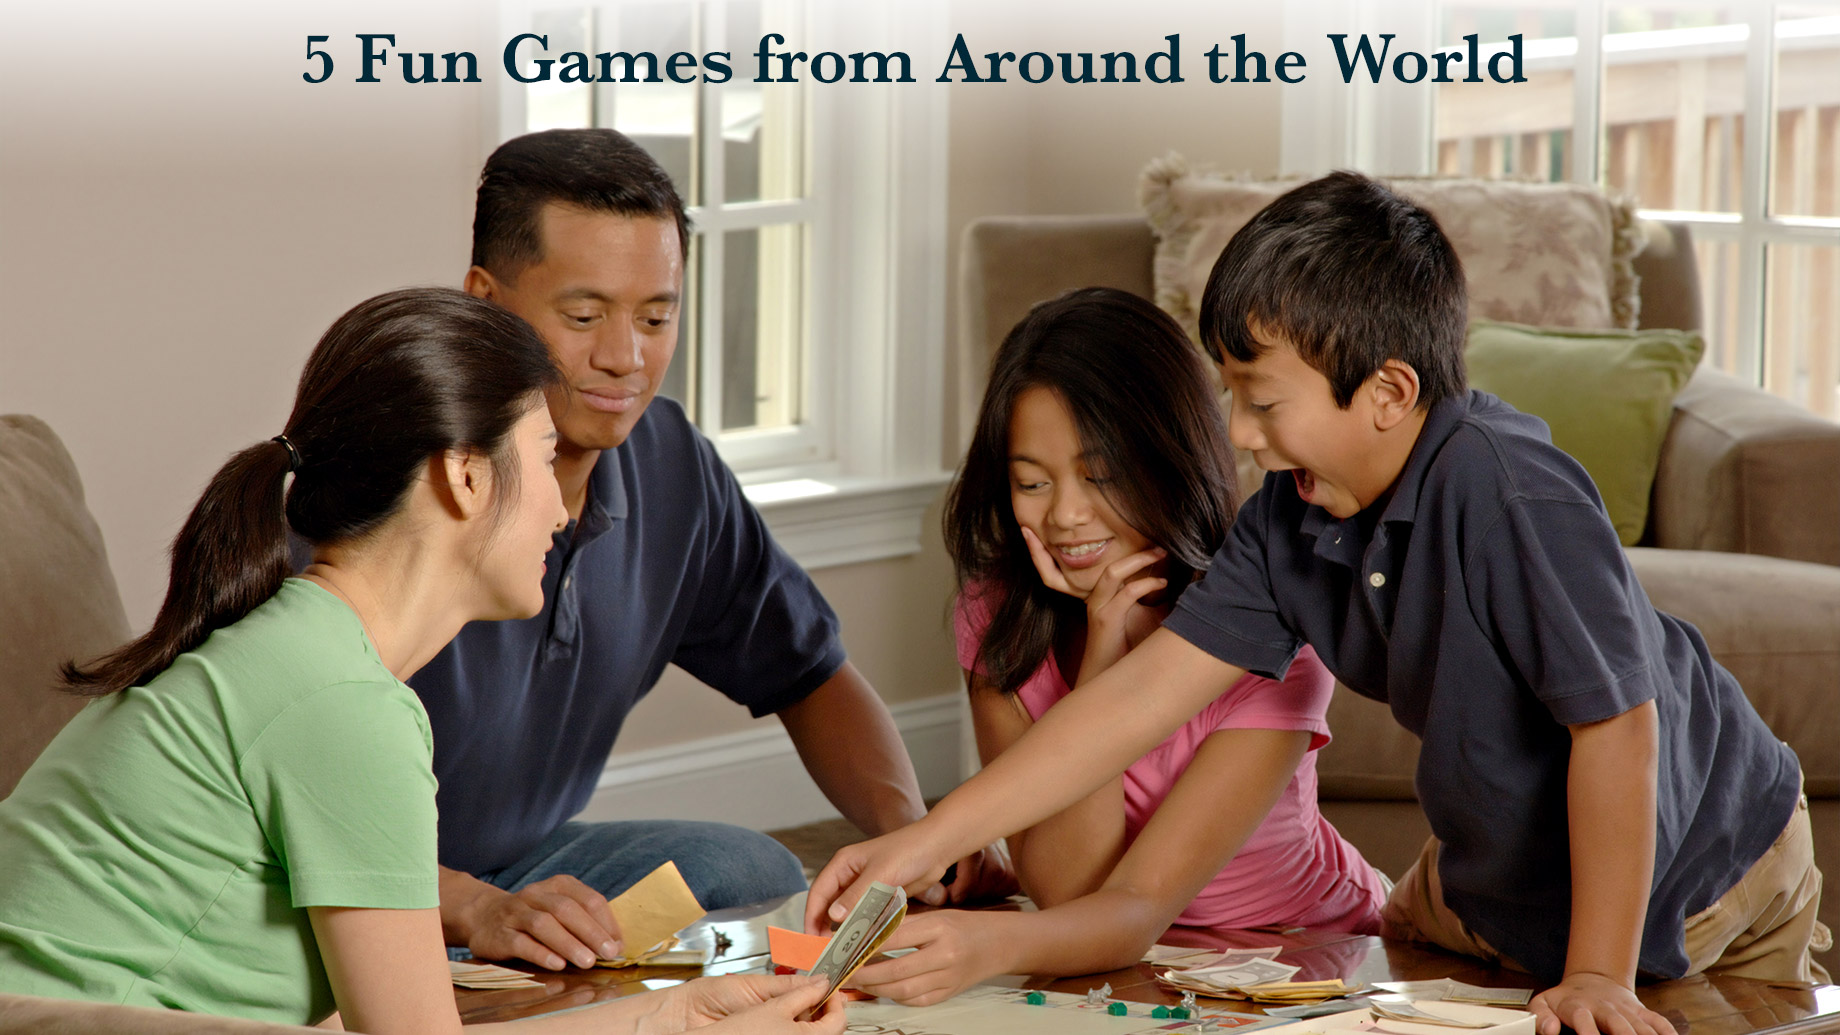 5 Fun Games from Around the World